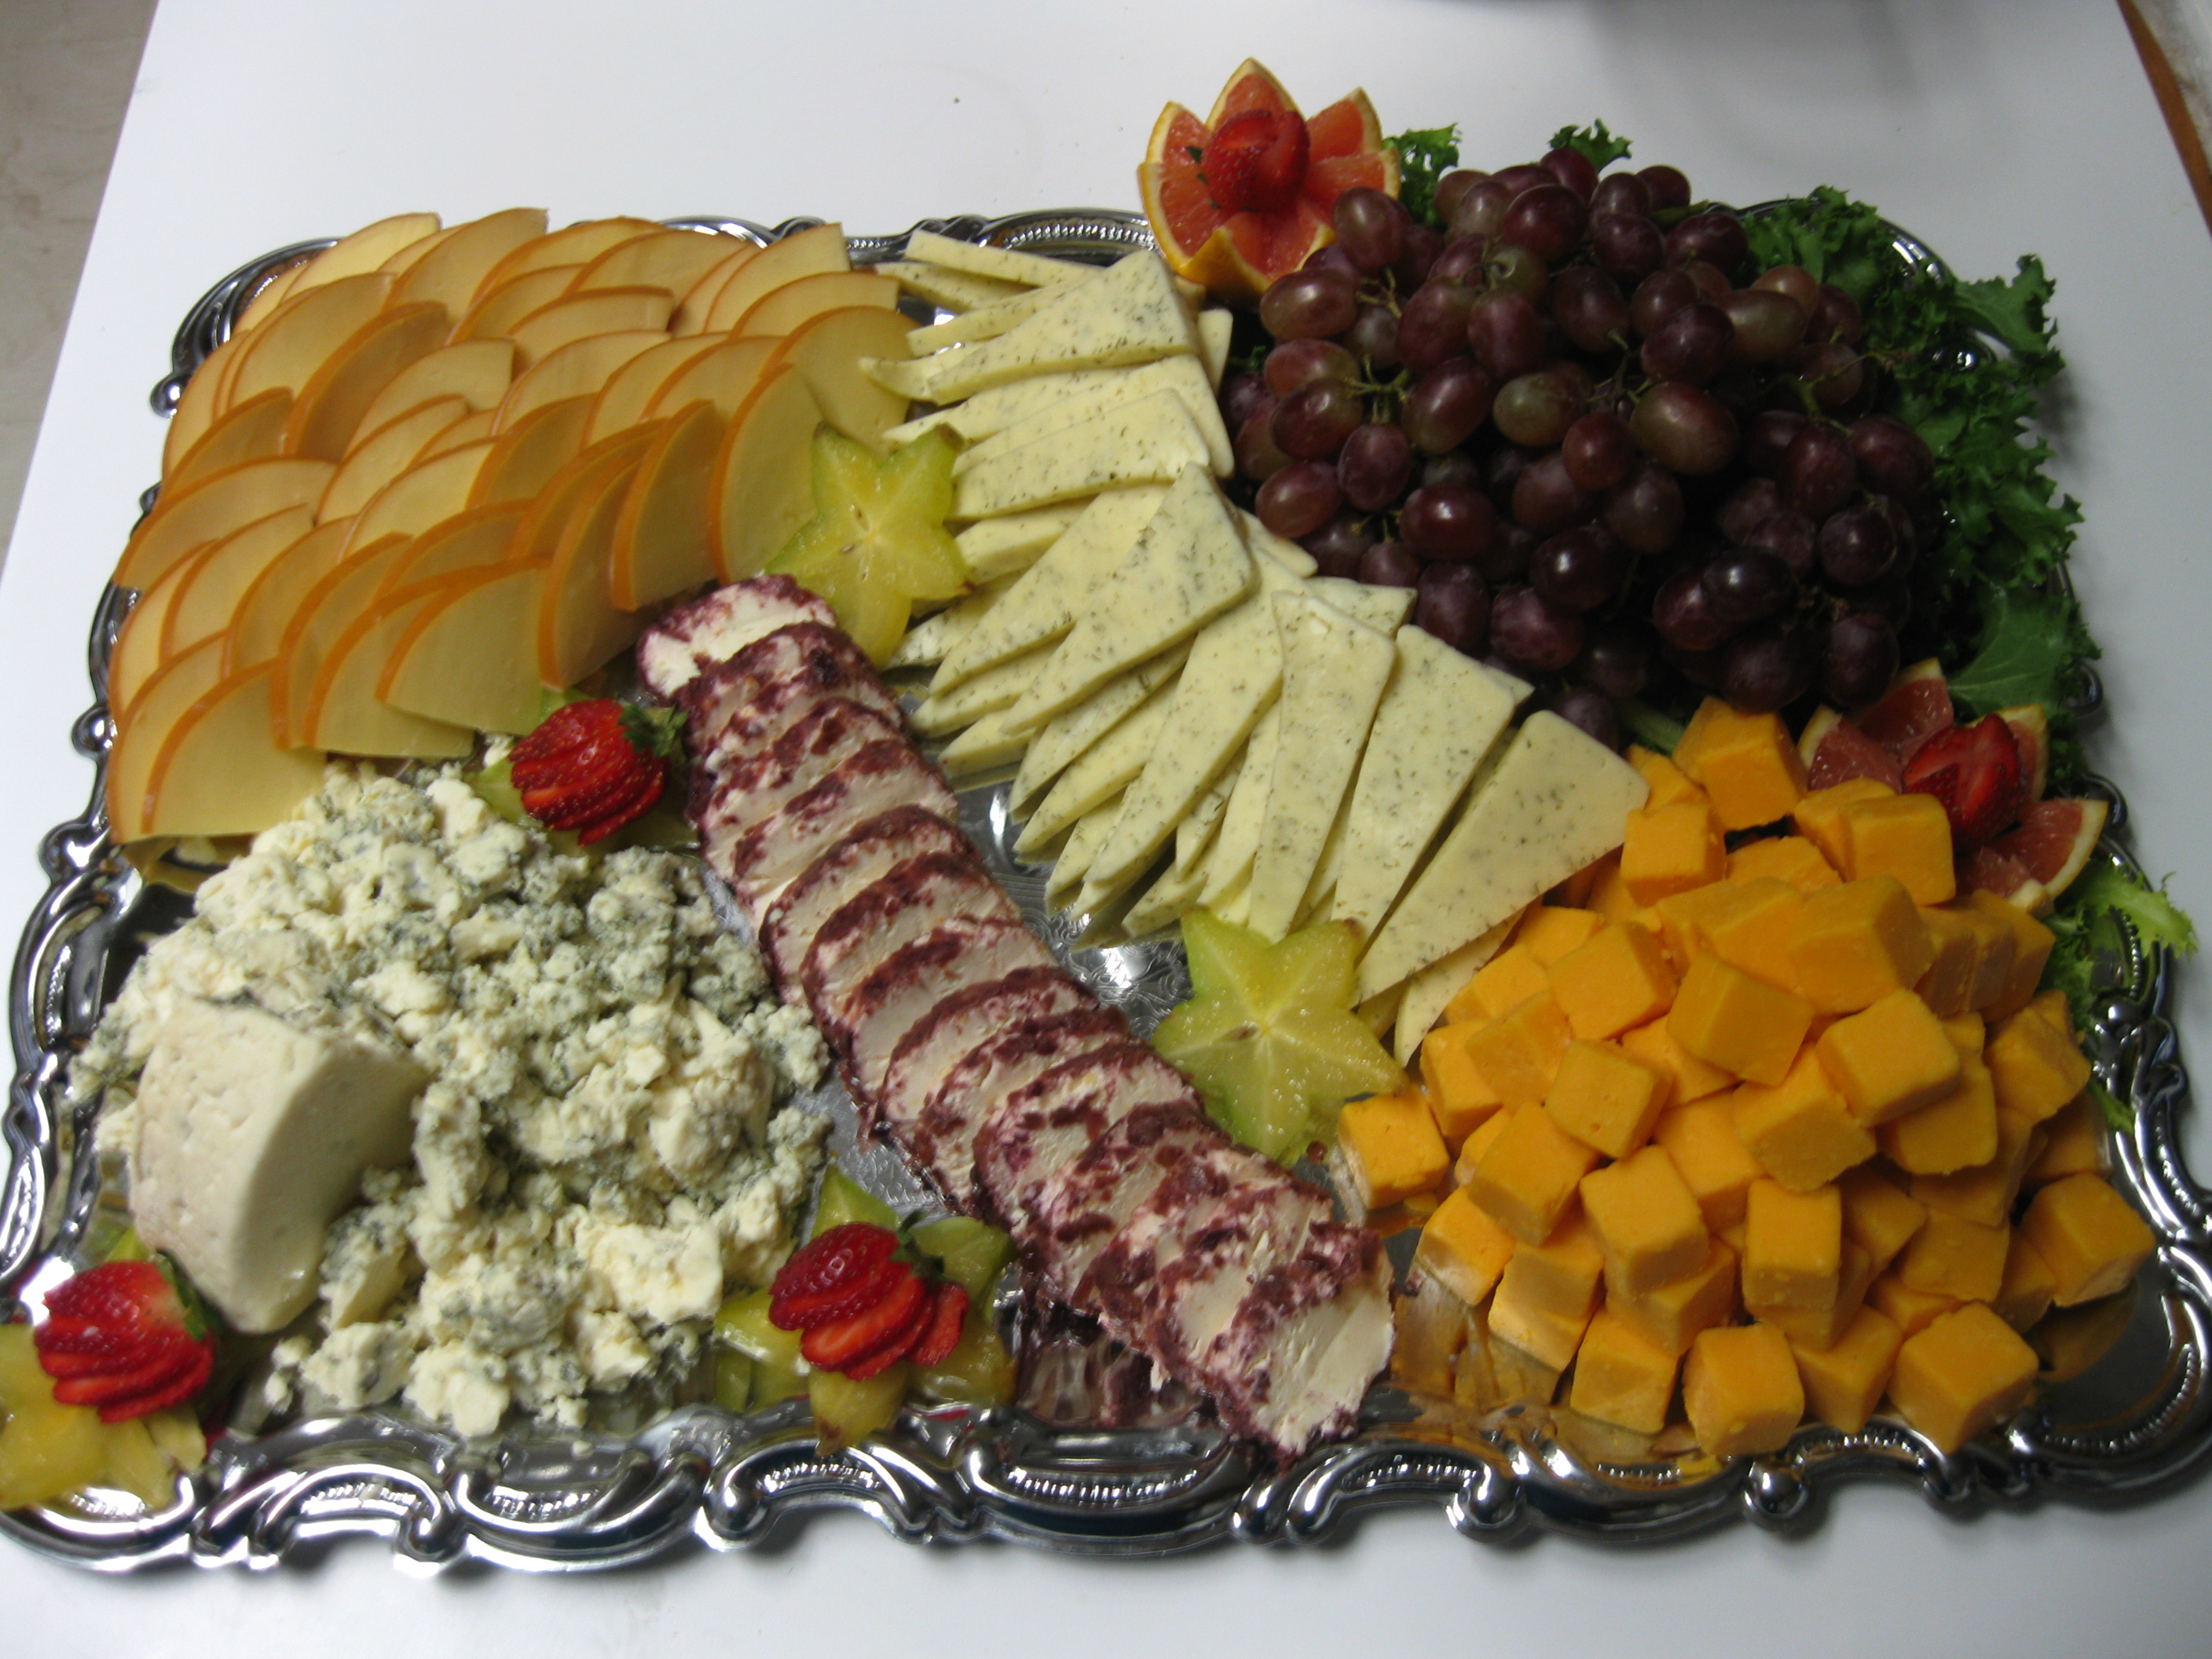 Our food party trays la tropicale catering for Canape platters